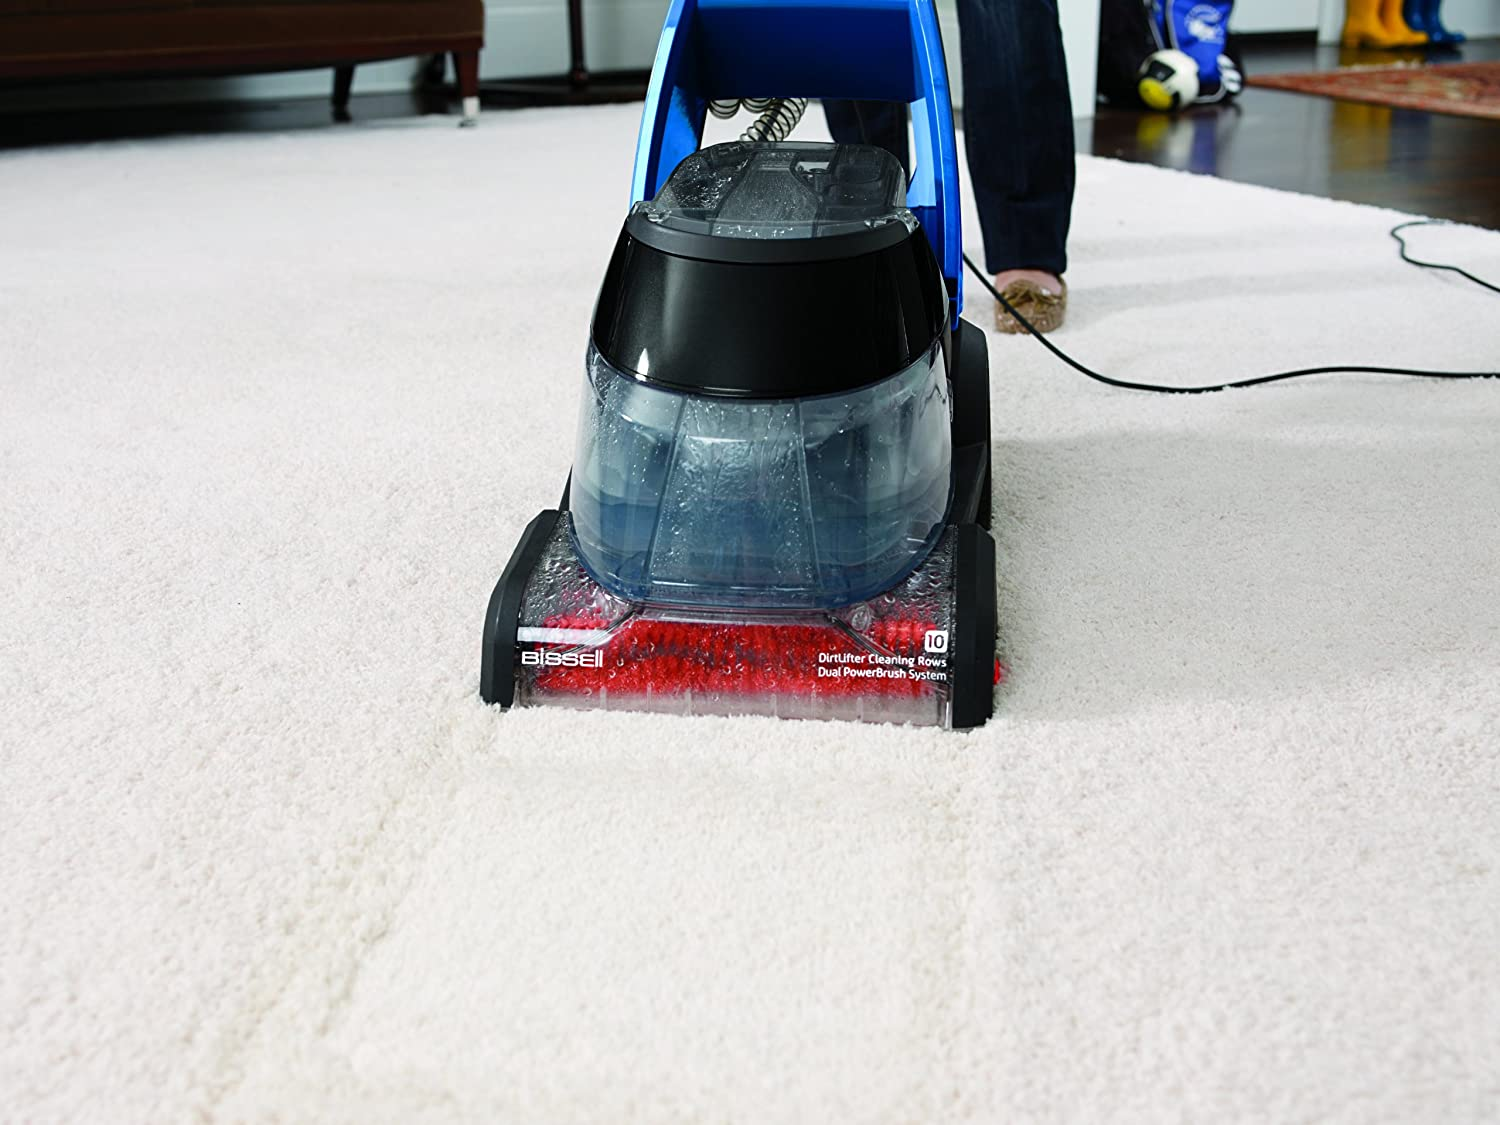 Carpet steam cleaner reviews